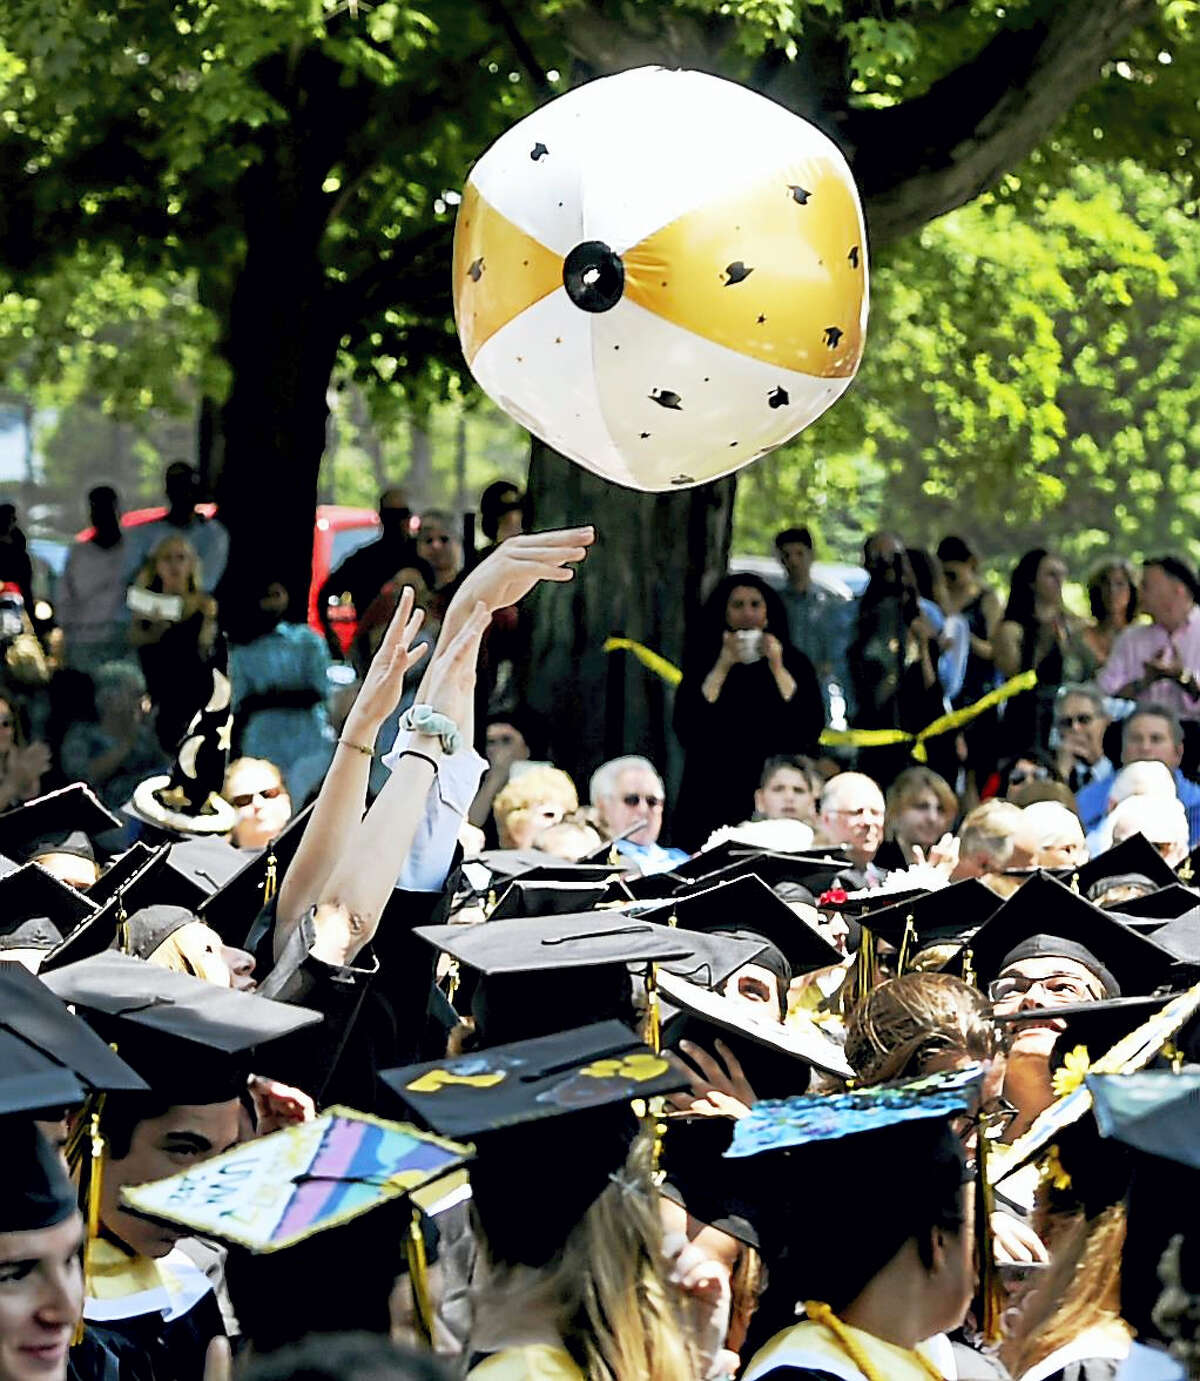 (Peter Hvizdak / Hearst Connecticut Media)Madison, Connecticut: June 19, 201. A ballon takes flight among the graduates during the Daniel Hand High School of Madison Class of 2017 commencement exercise on the lawn at the First Congregational Church in Madison.